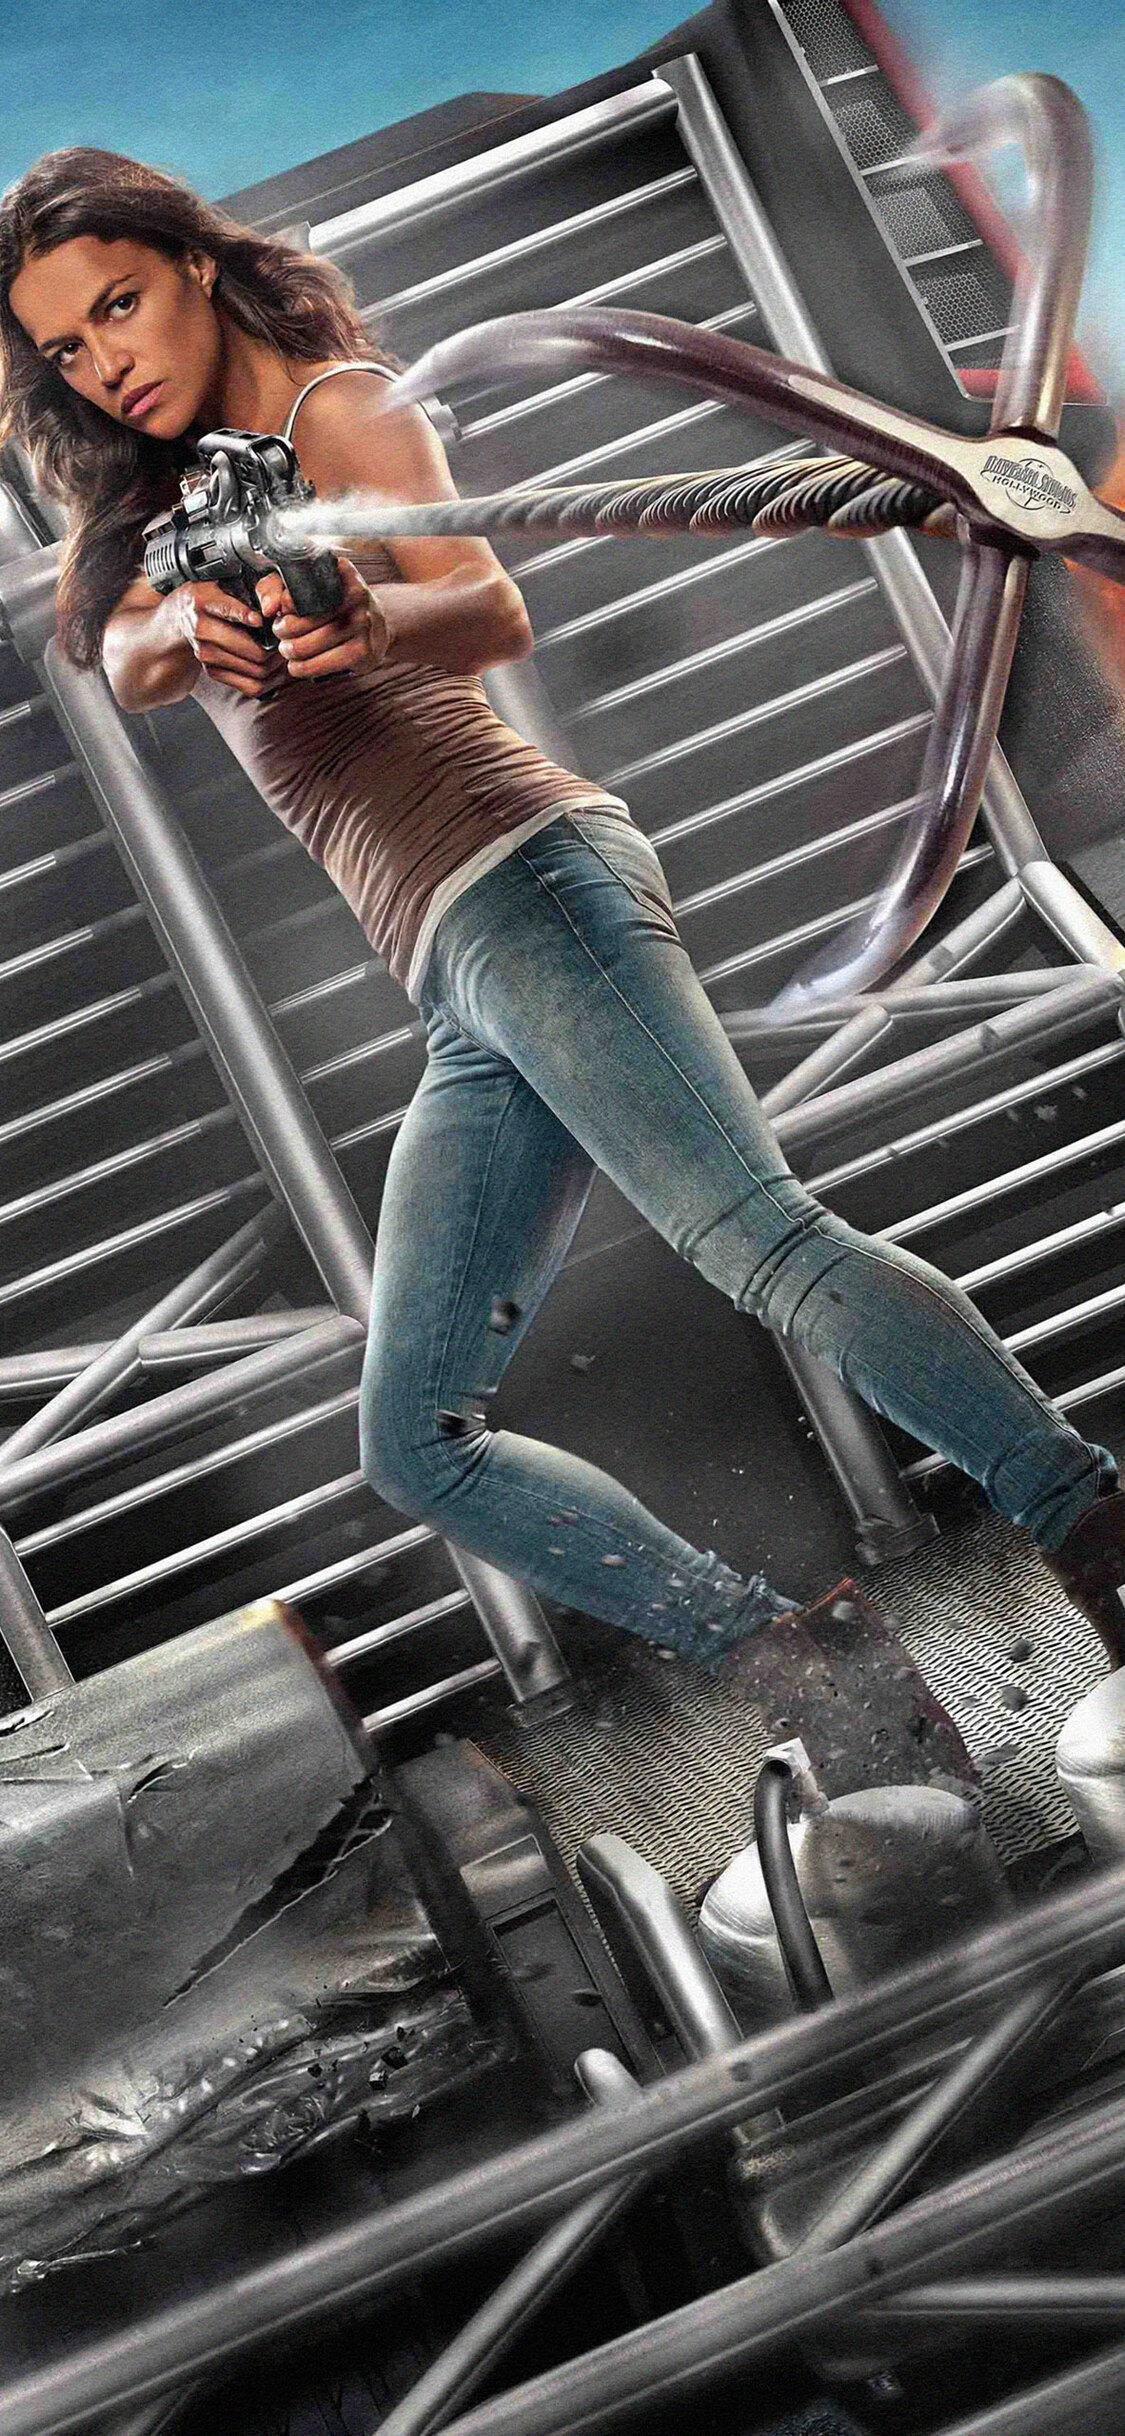 michelle-rodriguez-in-the-fate-of-the-furious-kz.jpg